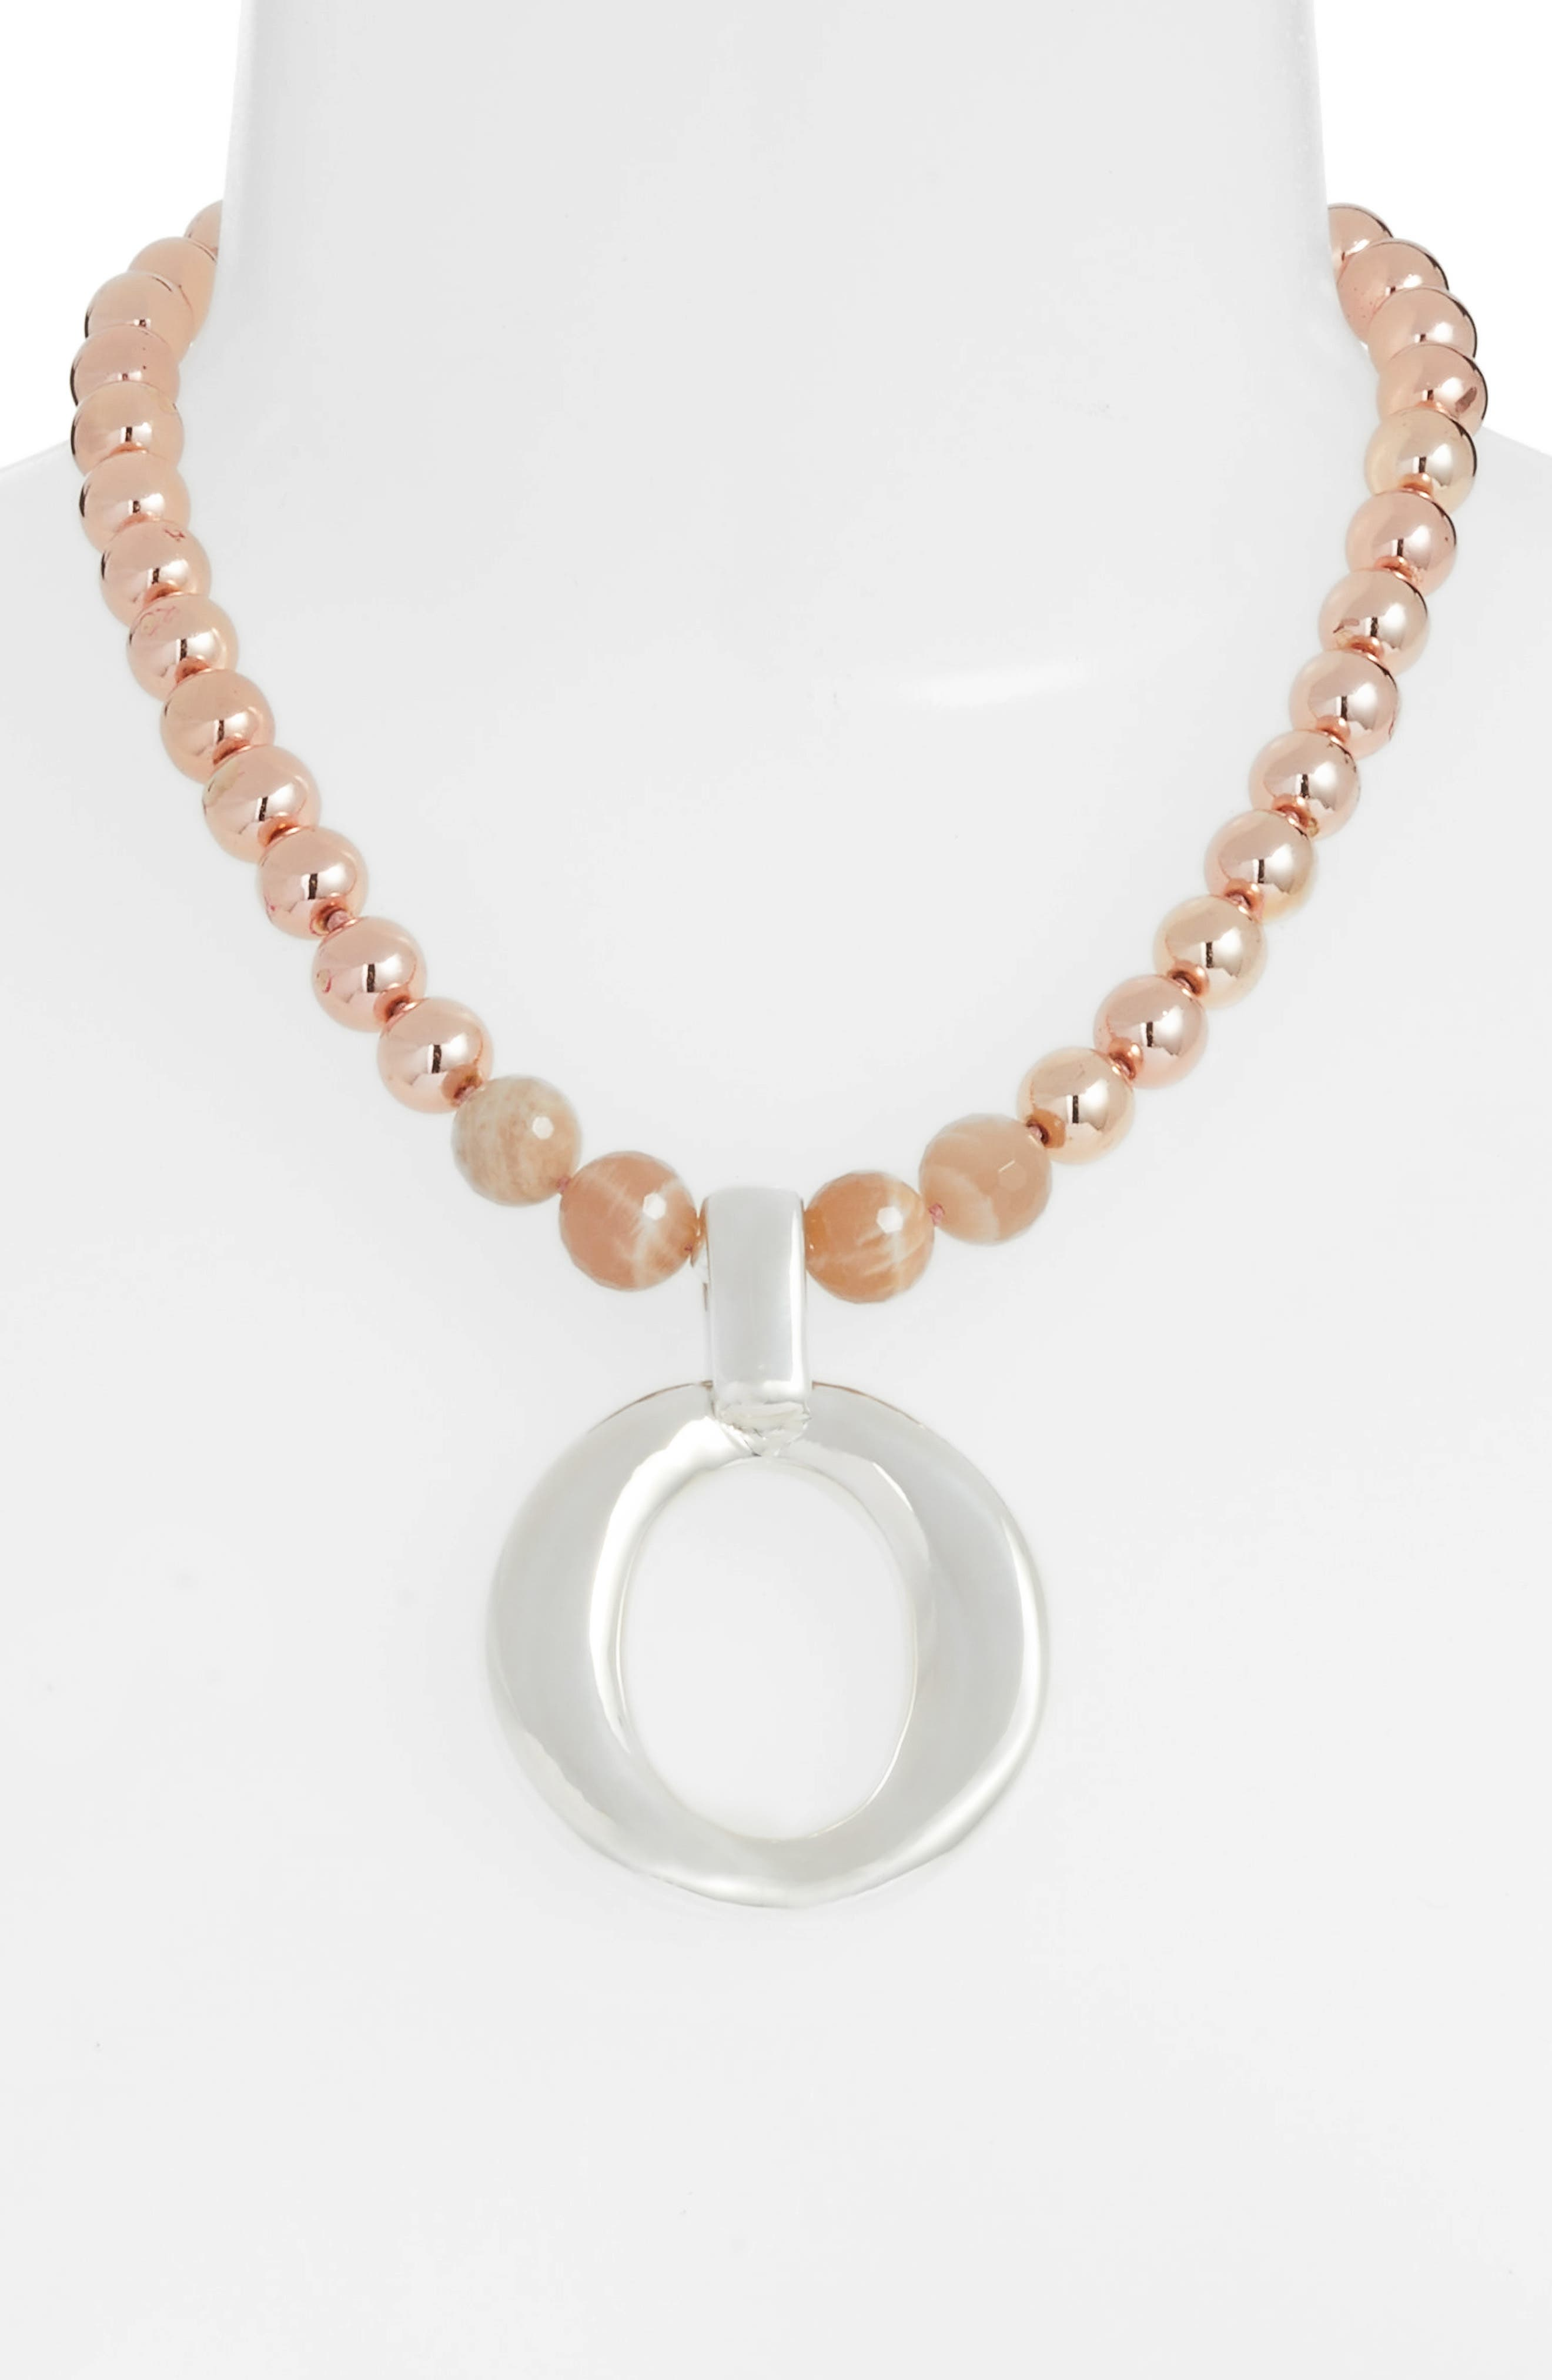 Hematite & Moonstone Necklace,                             Alternate thumbnail 2, color,                             Pink/ Silver